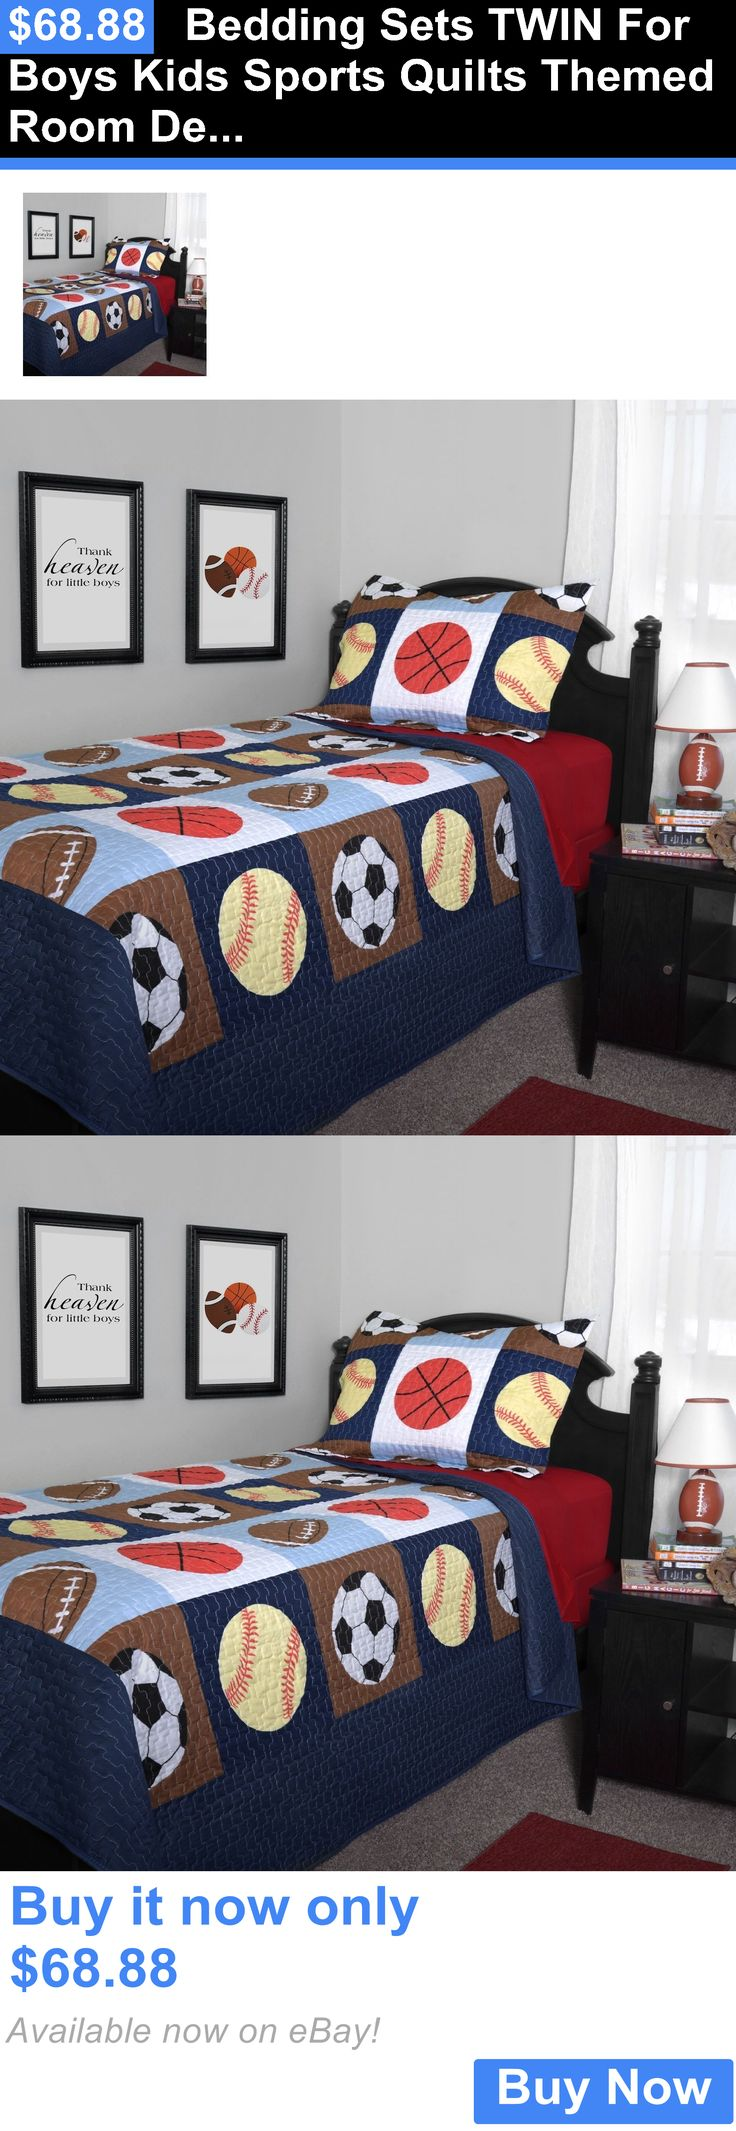 Kids At Home: Bedding Sets Twin For Boys Kids Sports Quilts Themed Room  Decor Bedroom